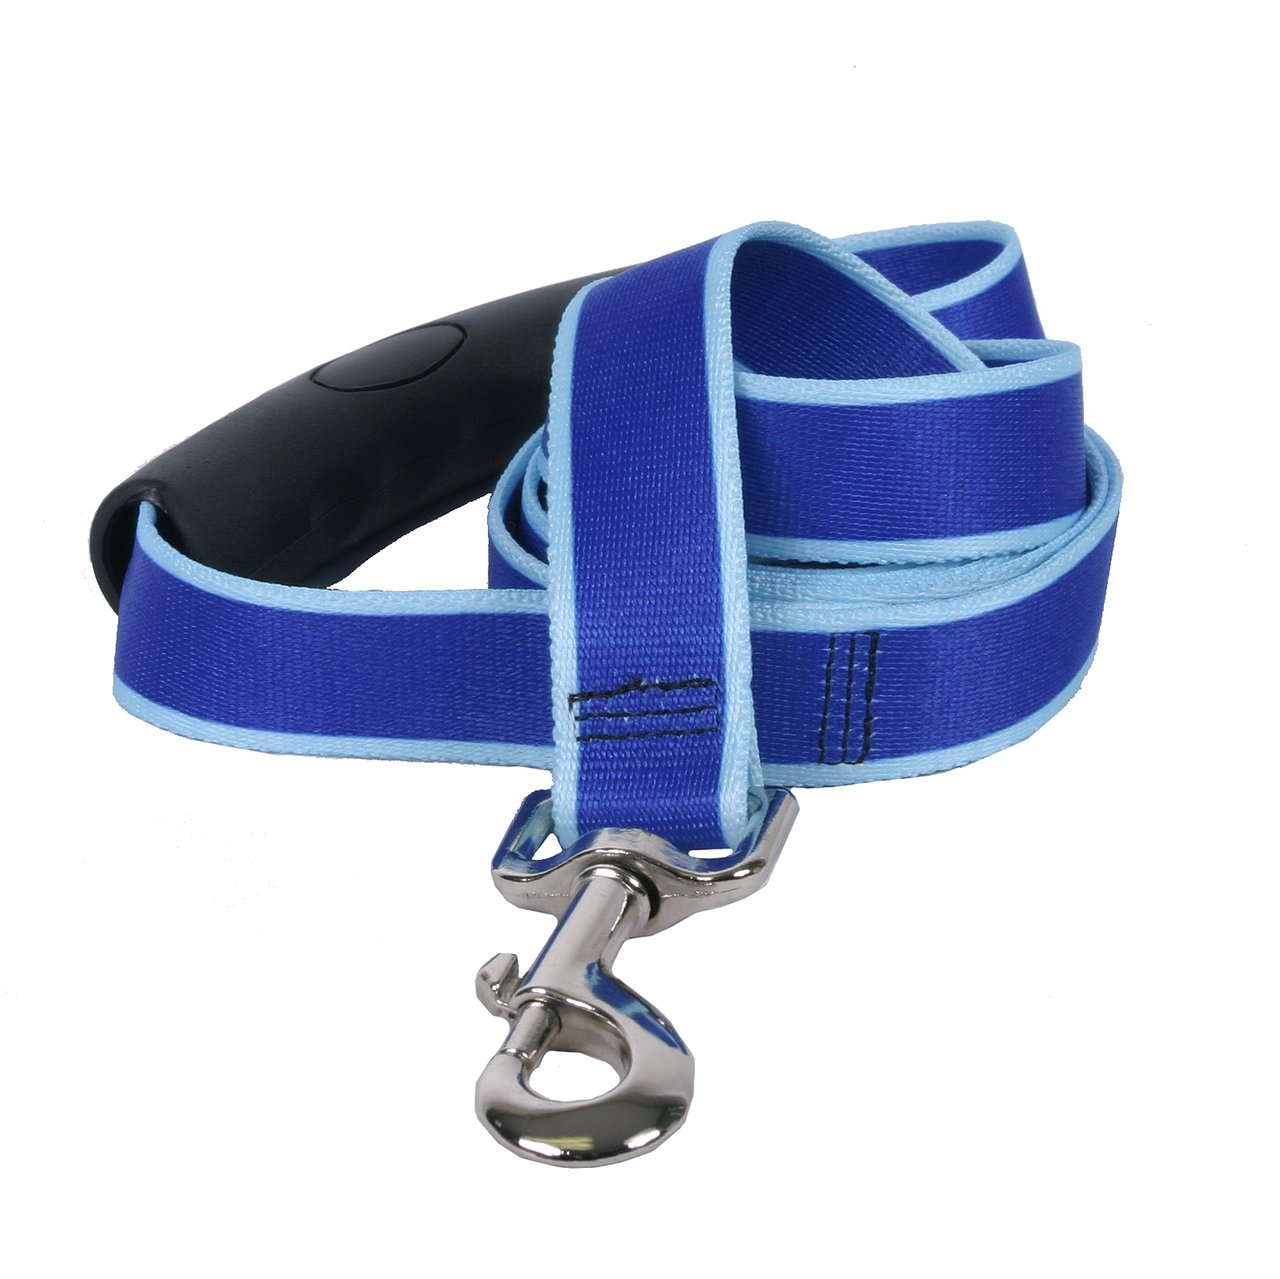 Yellow Dog Design Sterling Stripes Royal Light Blue Dog Leash with Comfort Grip Handle-Small-5/8 5' x 60 RBLB119